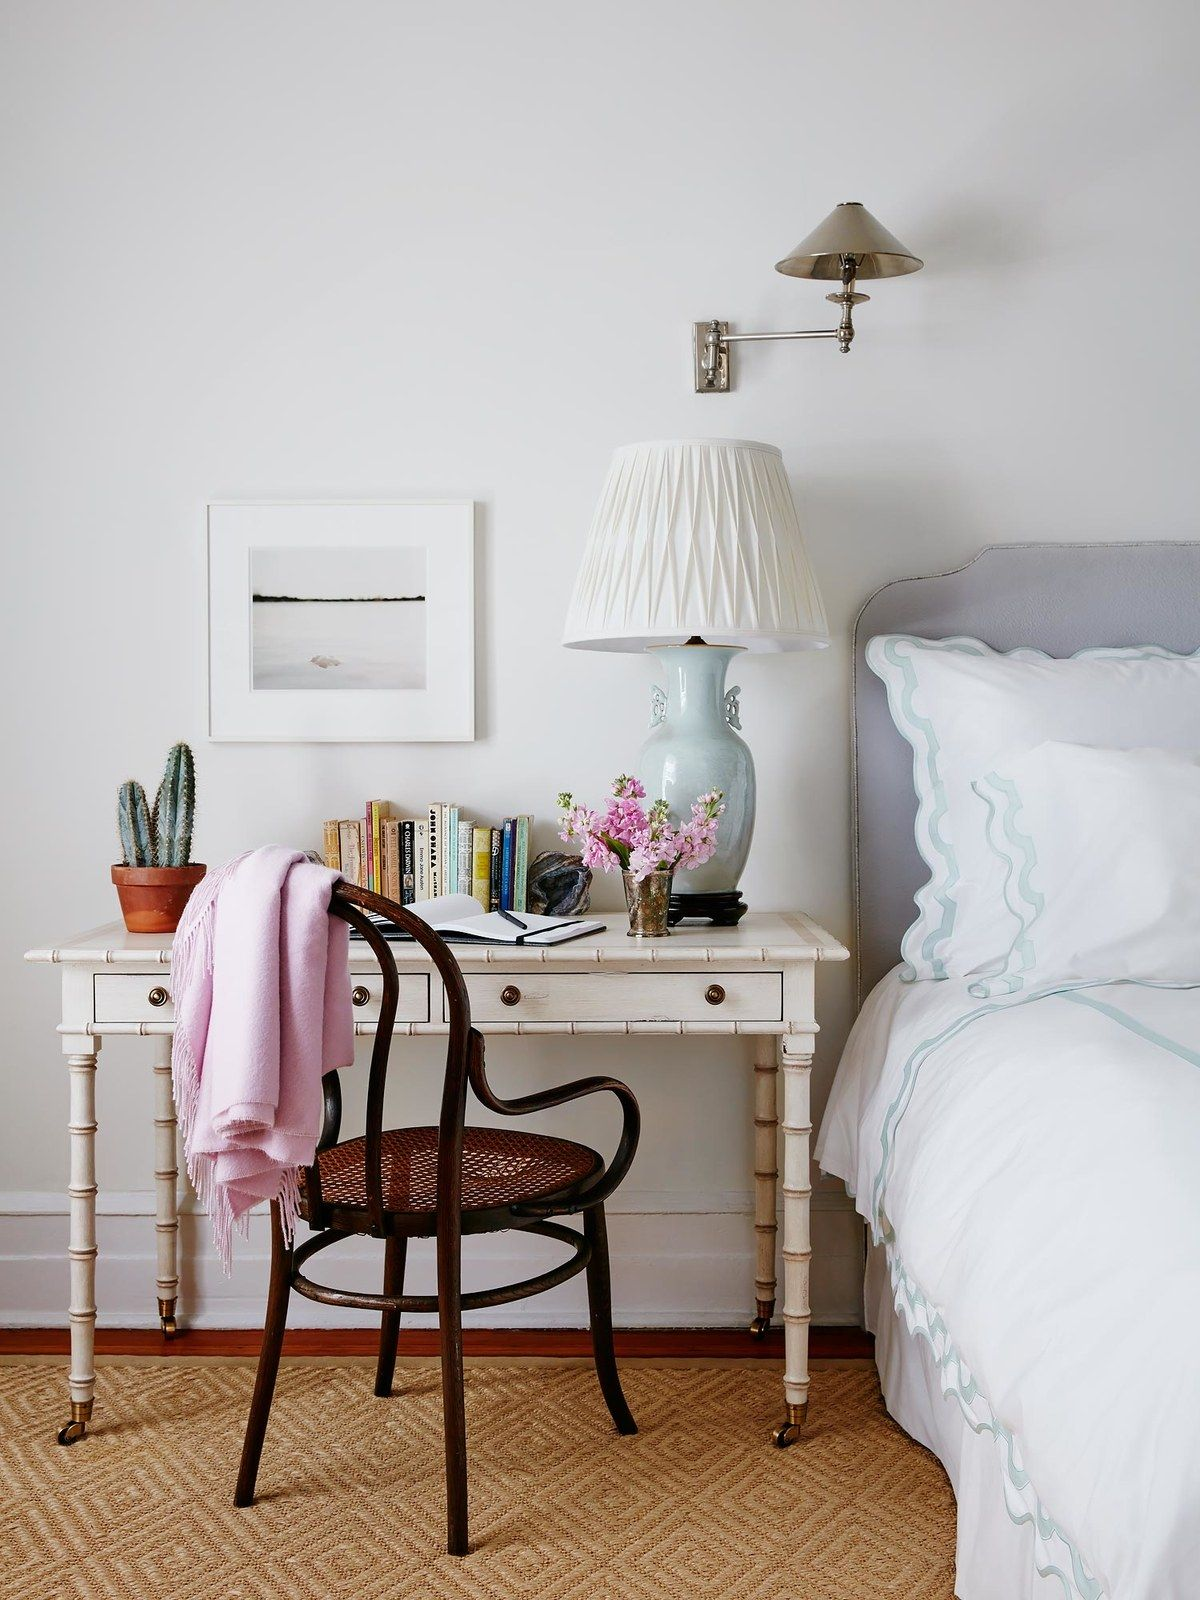 A Desk Doubles As A Bedside Table In This Small Bedroom.